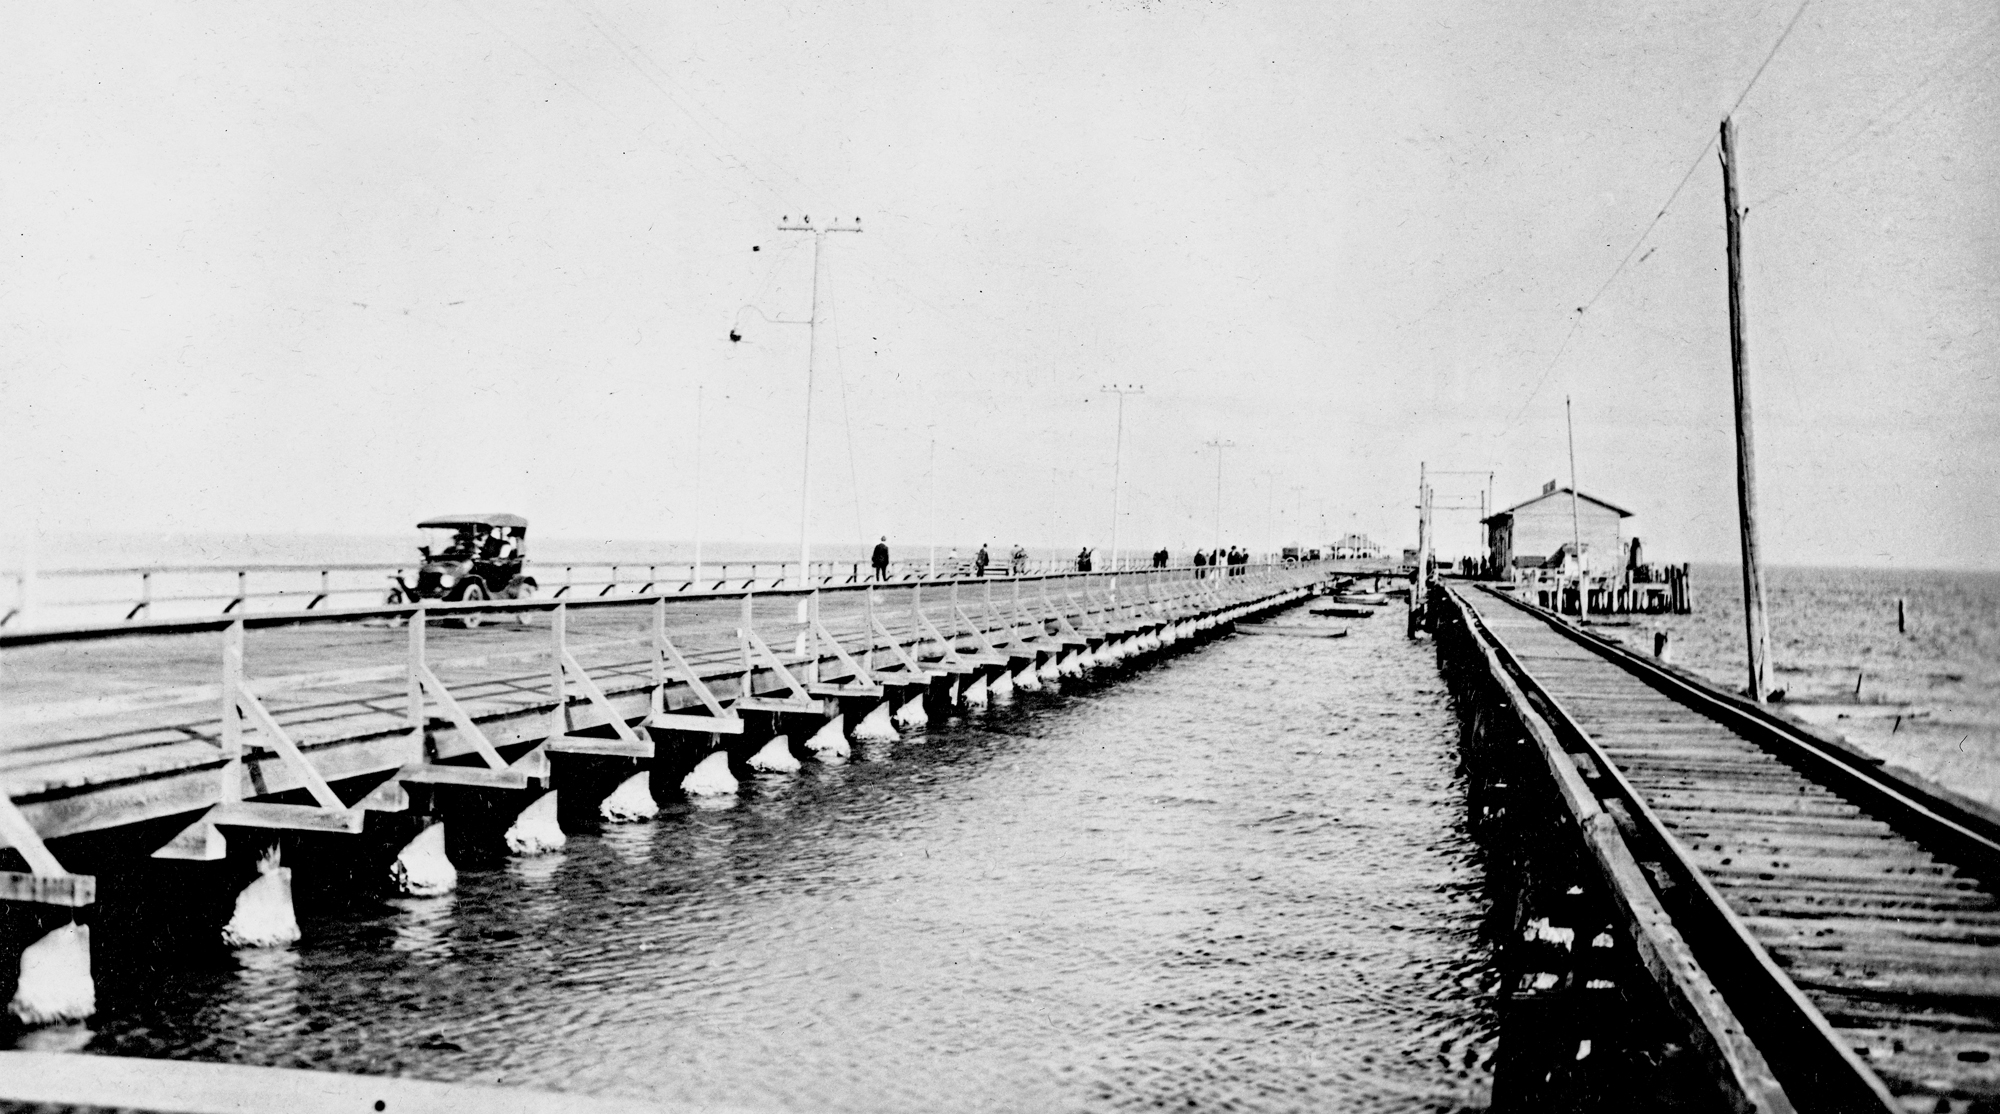 Municipal pier and railroad pier - Saint Petersburg, Florida. 1917 or 1918. Black & white photonegative, 4 x 5 in. State Archives of Florida, Florida Memory.